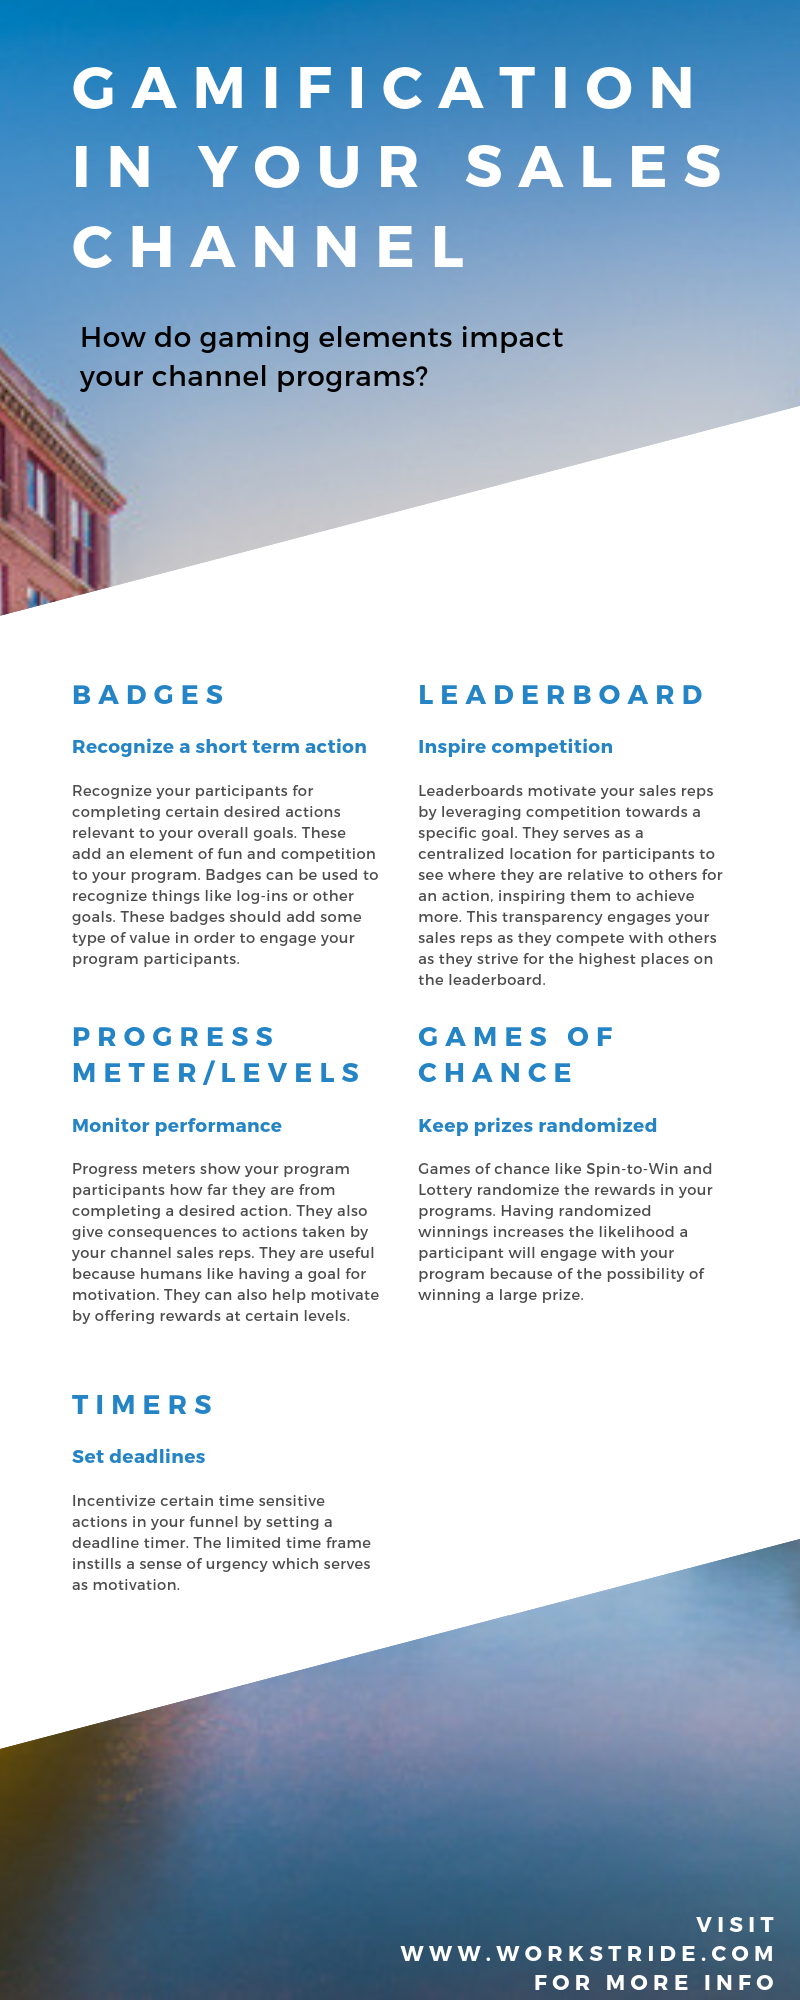 WorkStride Channel Incentives Infographic